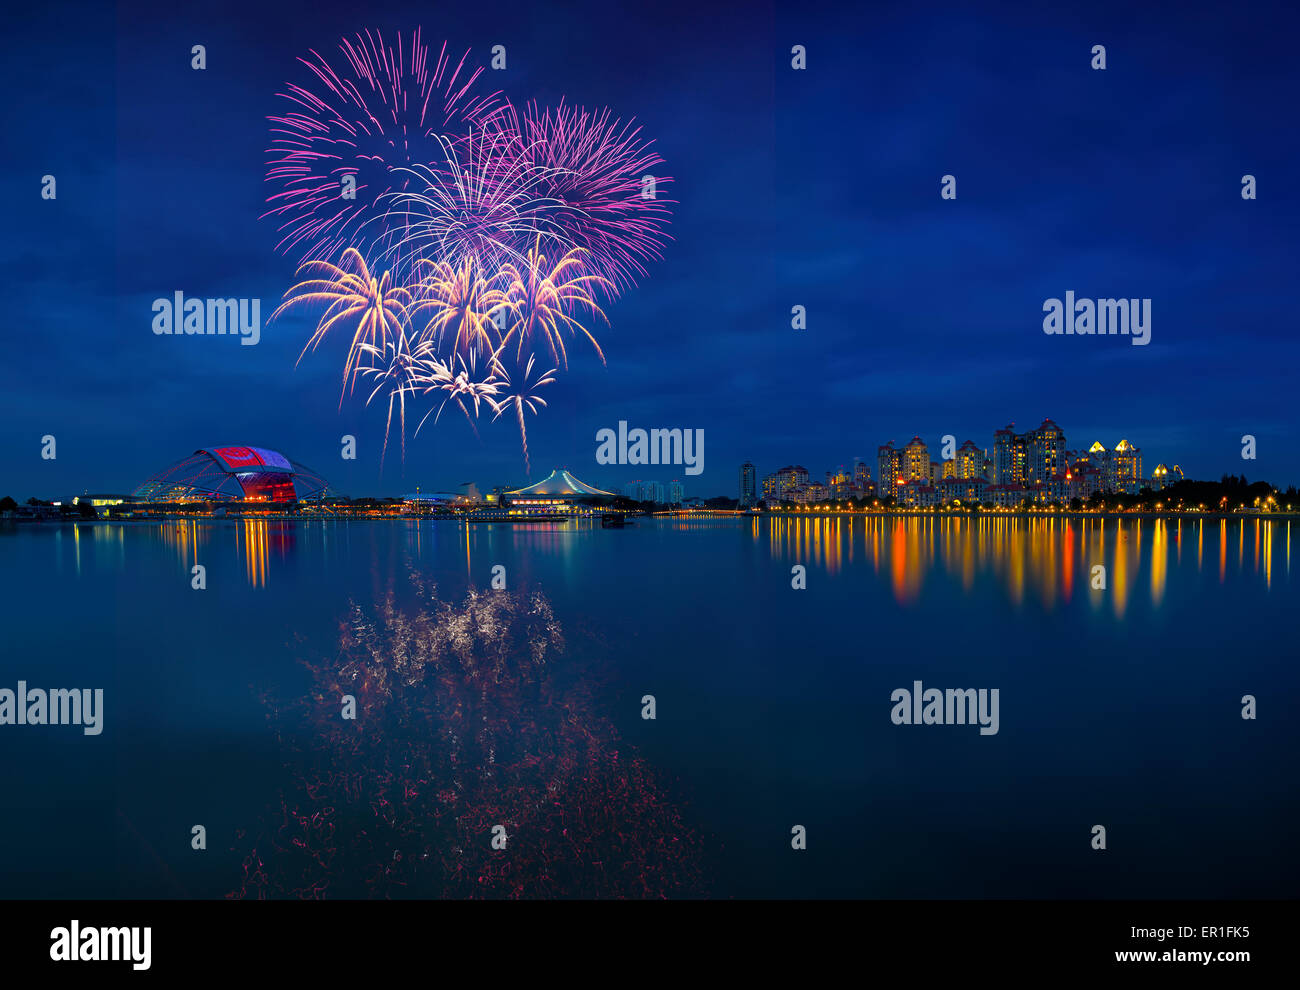 SEA games fireworks - Stock Image